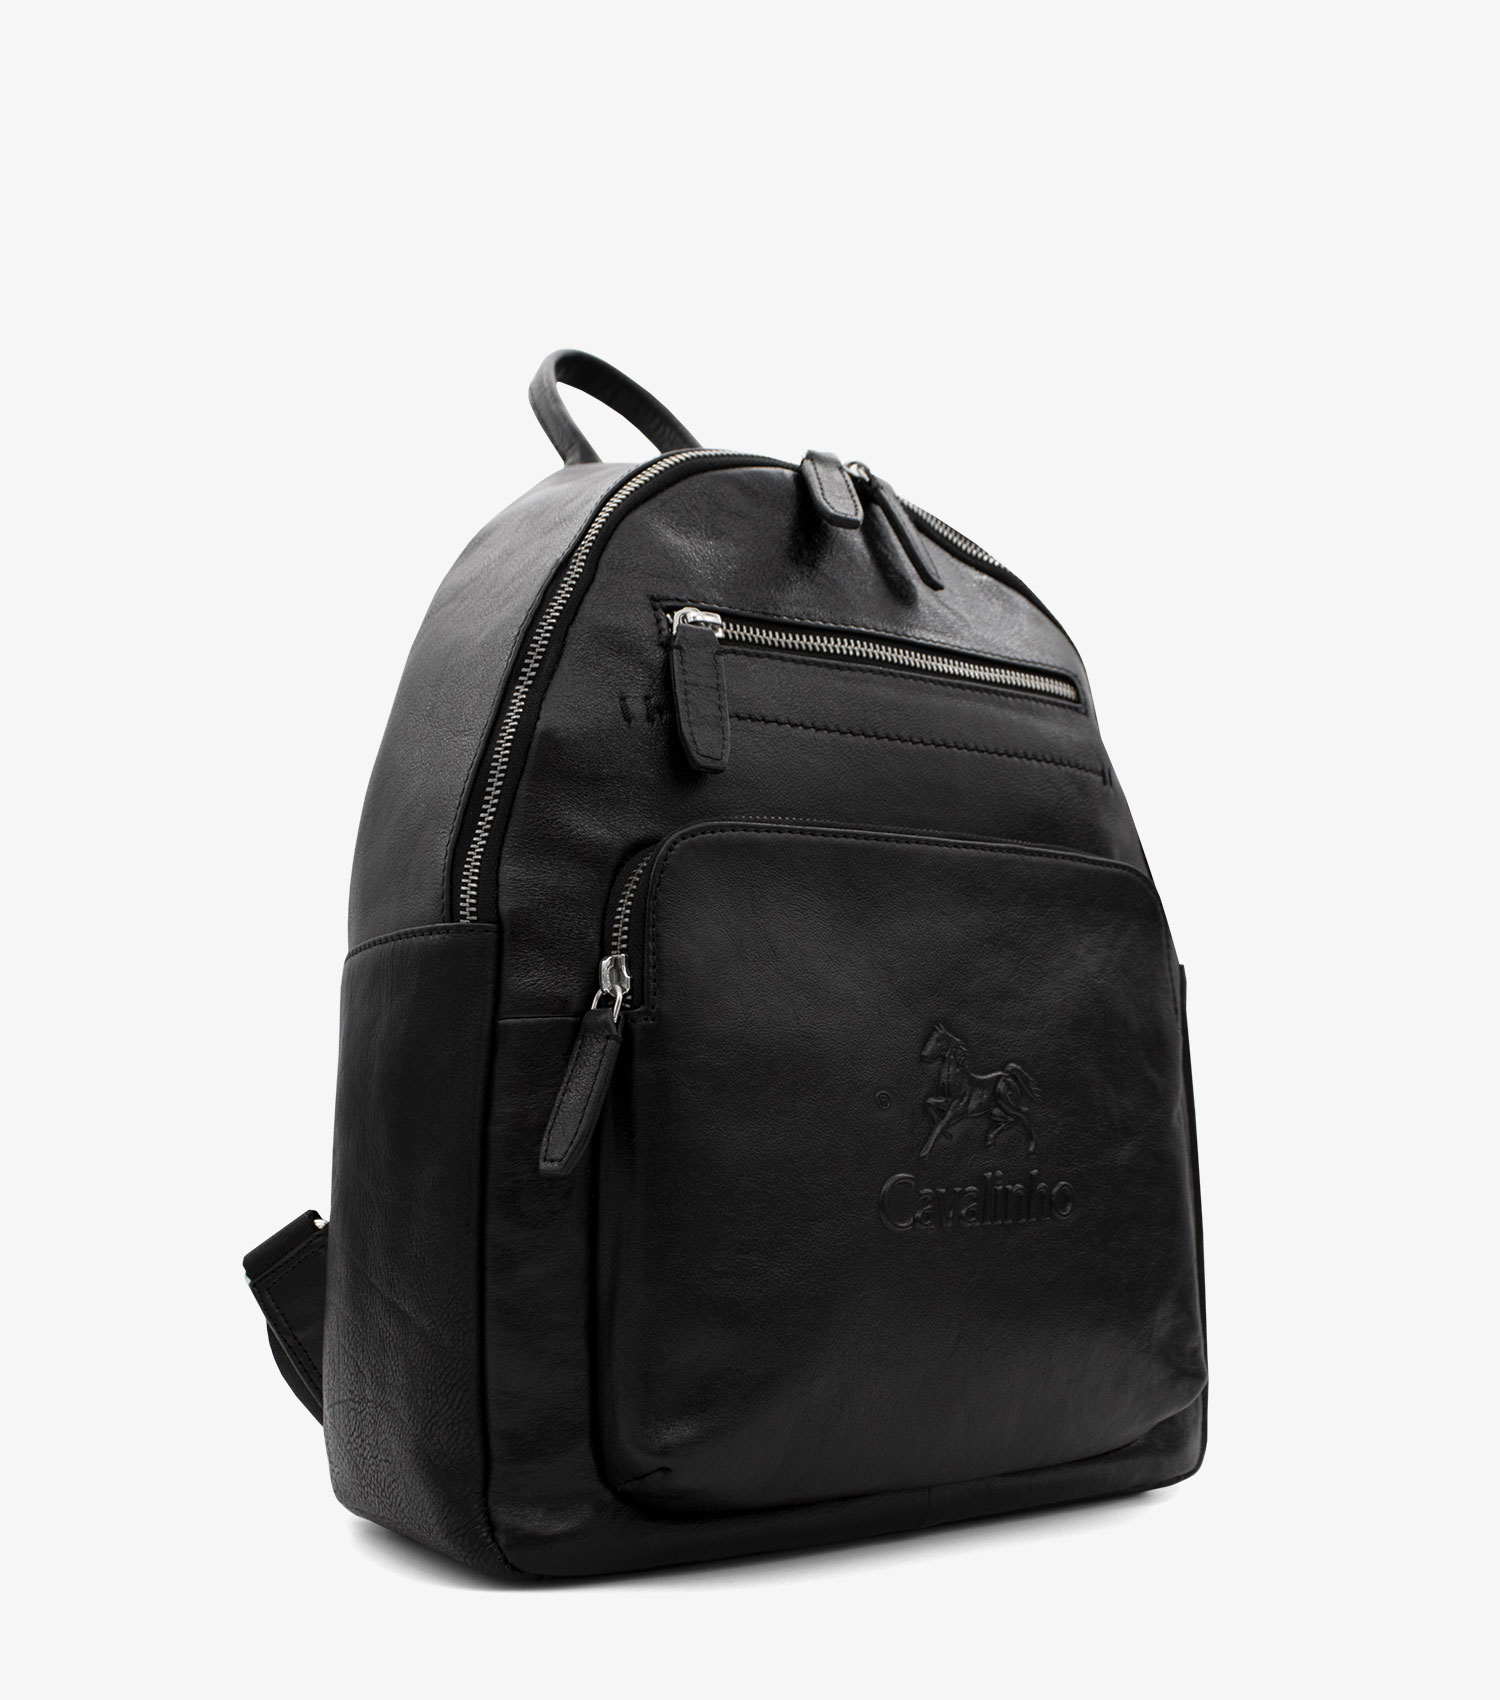 Gentleman Backpack